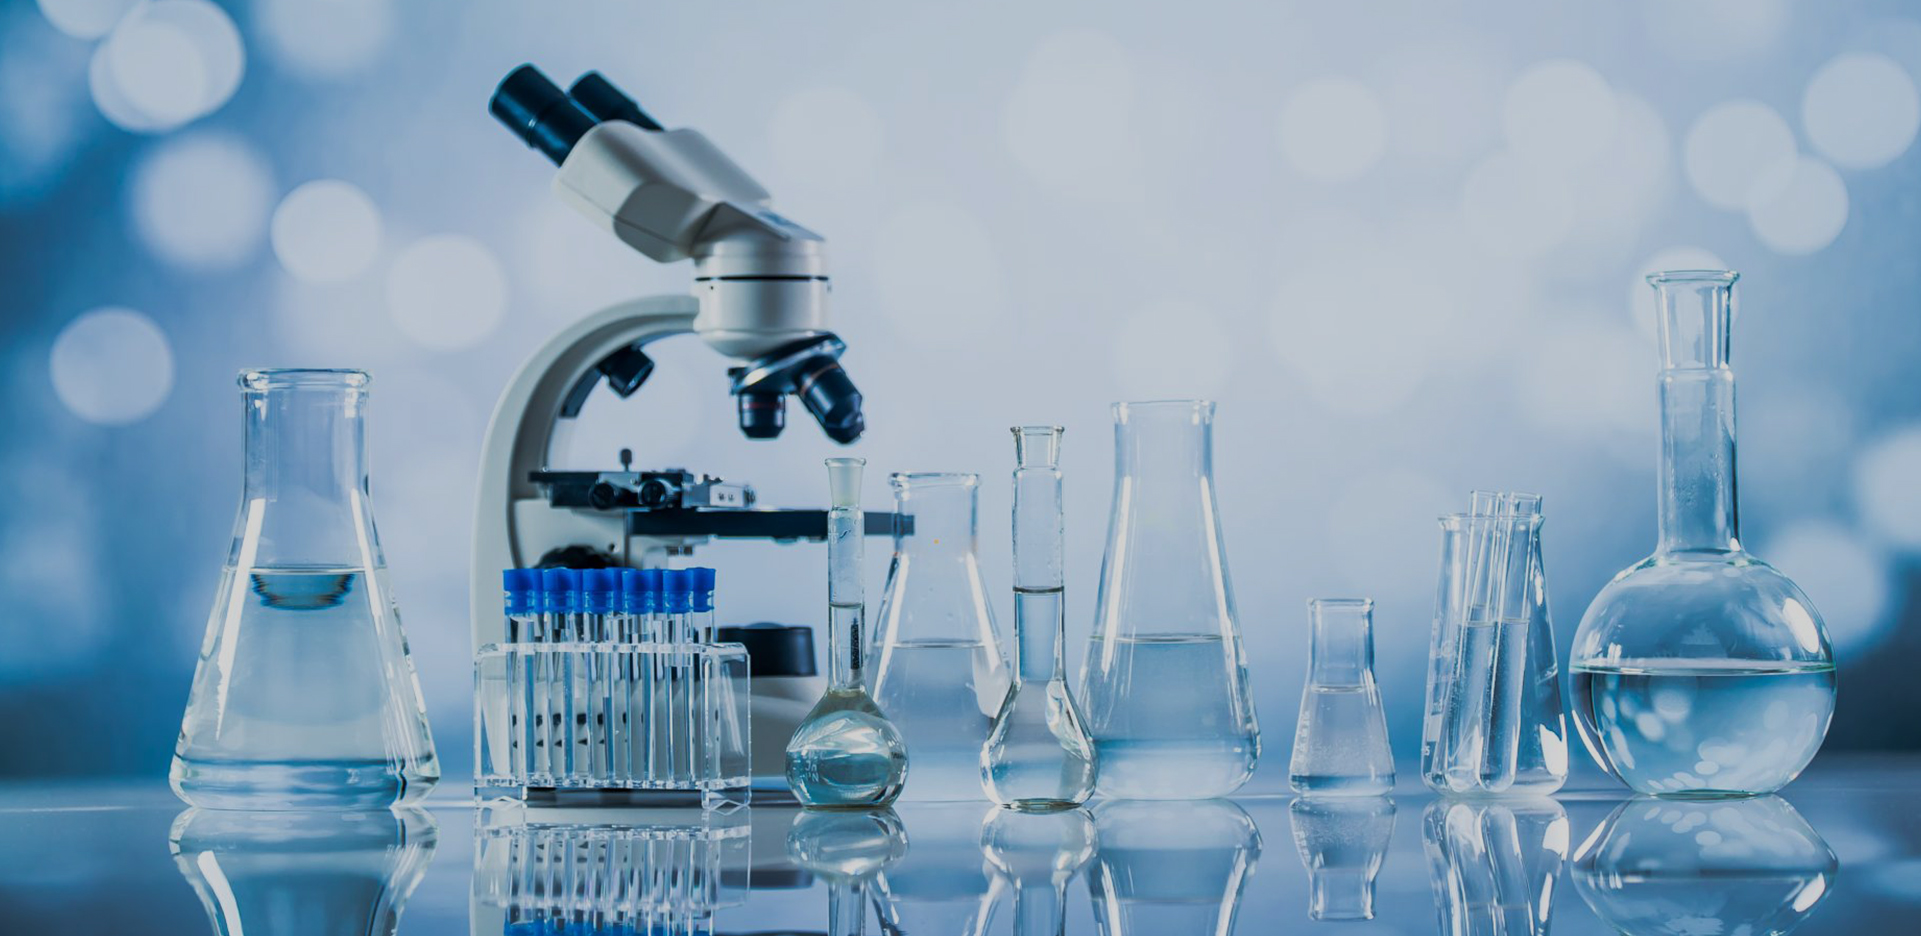 Laboratory Equipment Reagents Johannesburg South Africa